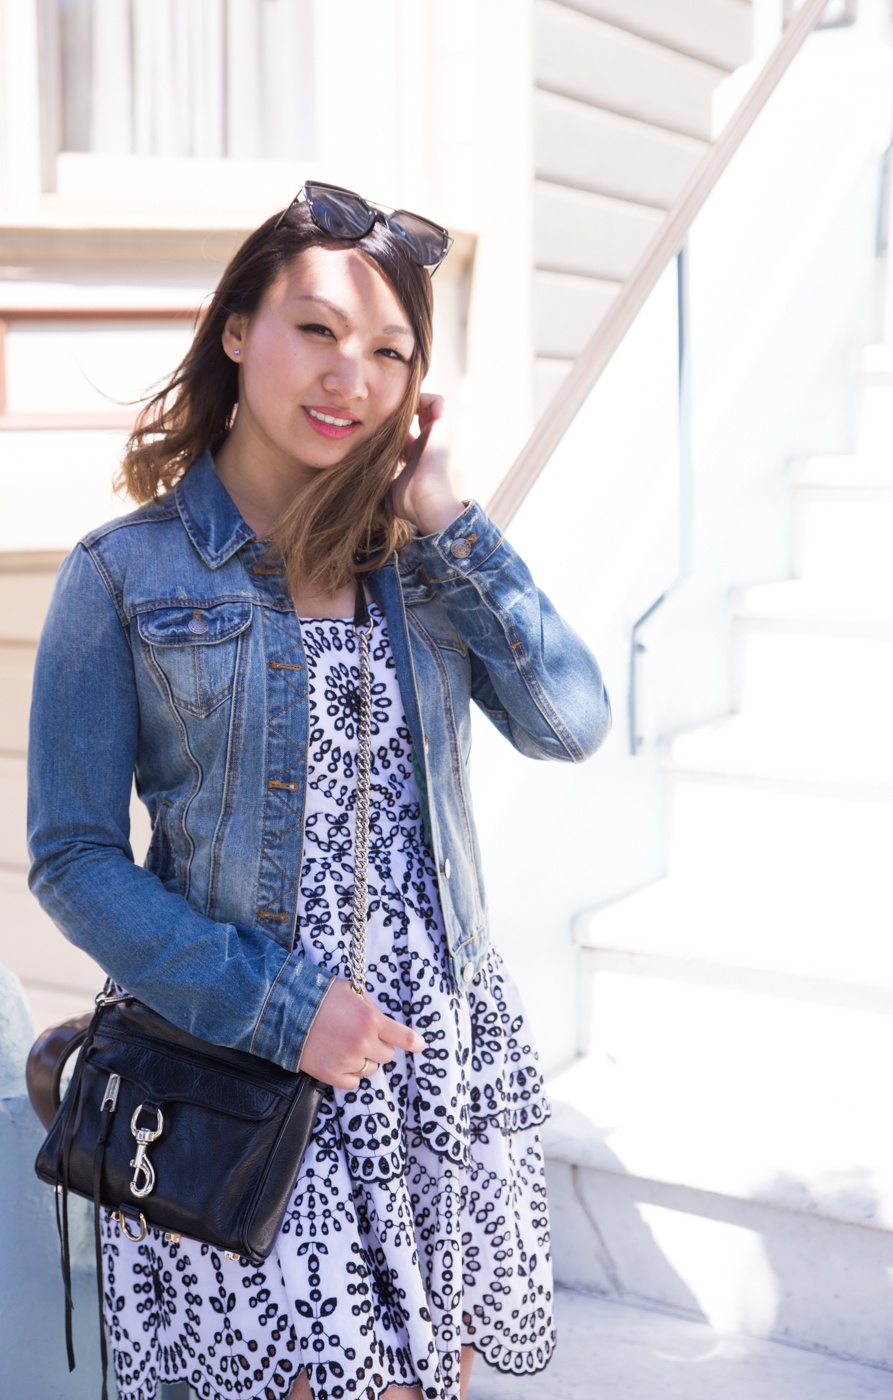 Zara Distressed Denim Jacket | The Chic Diary